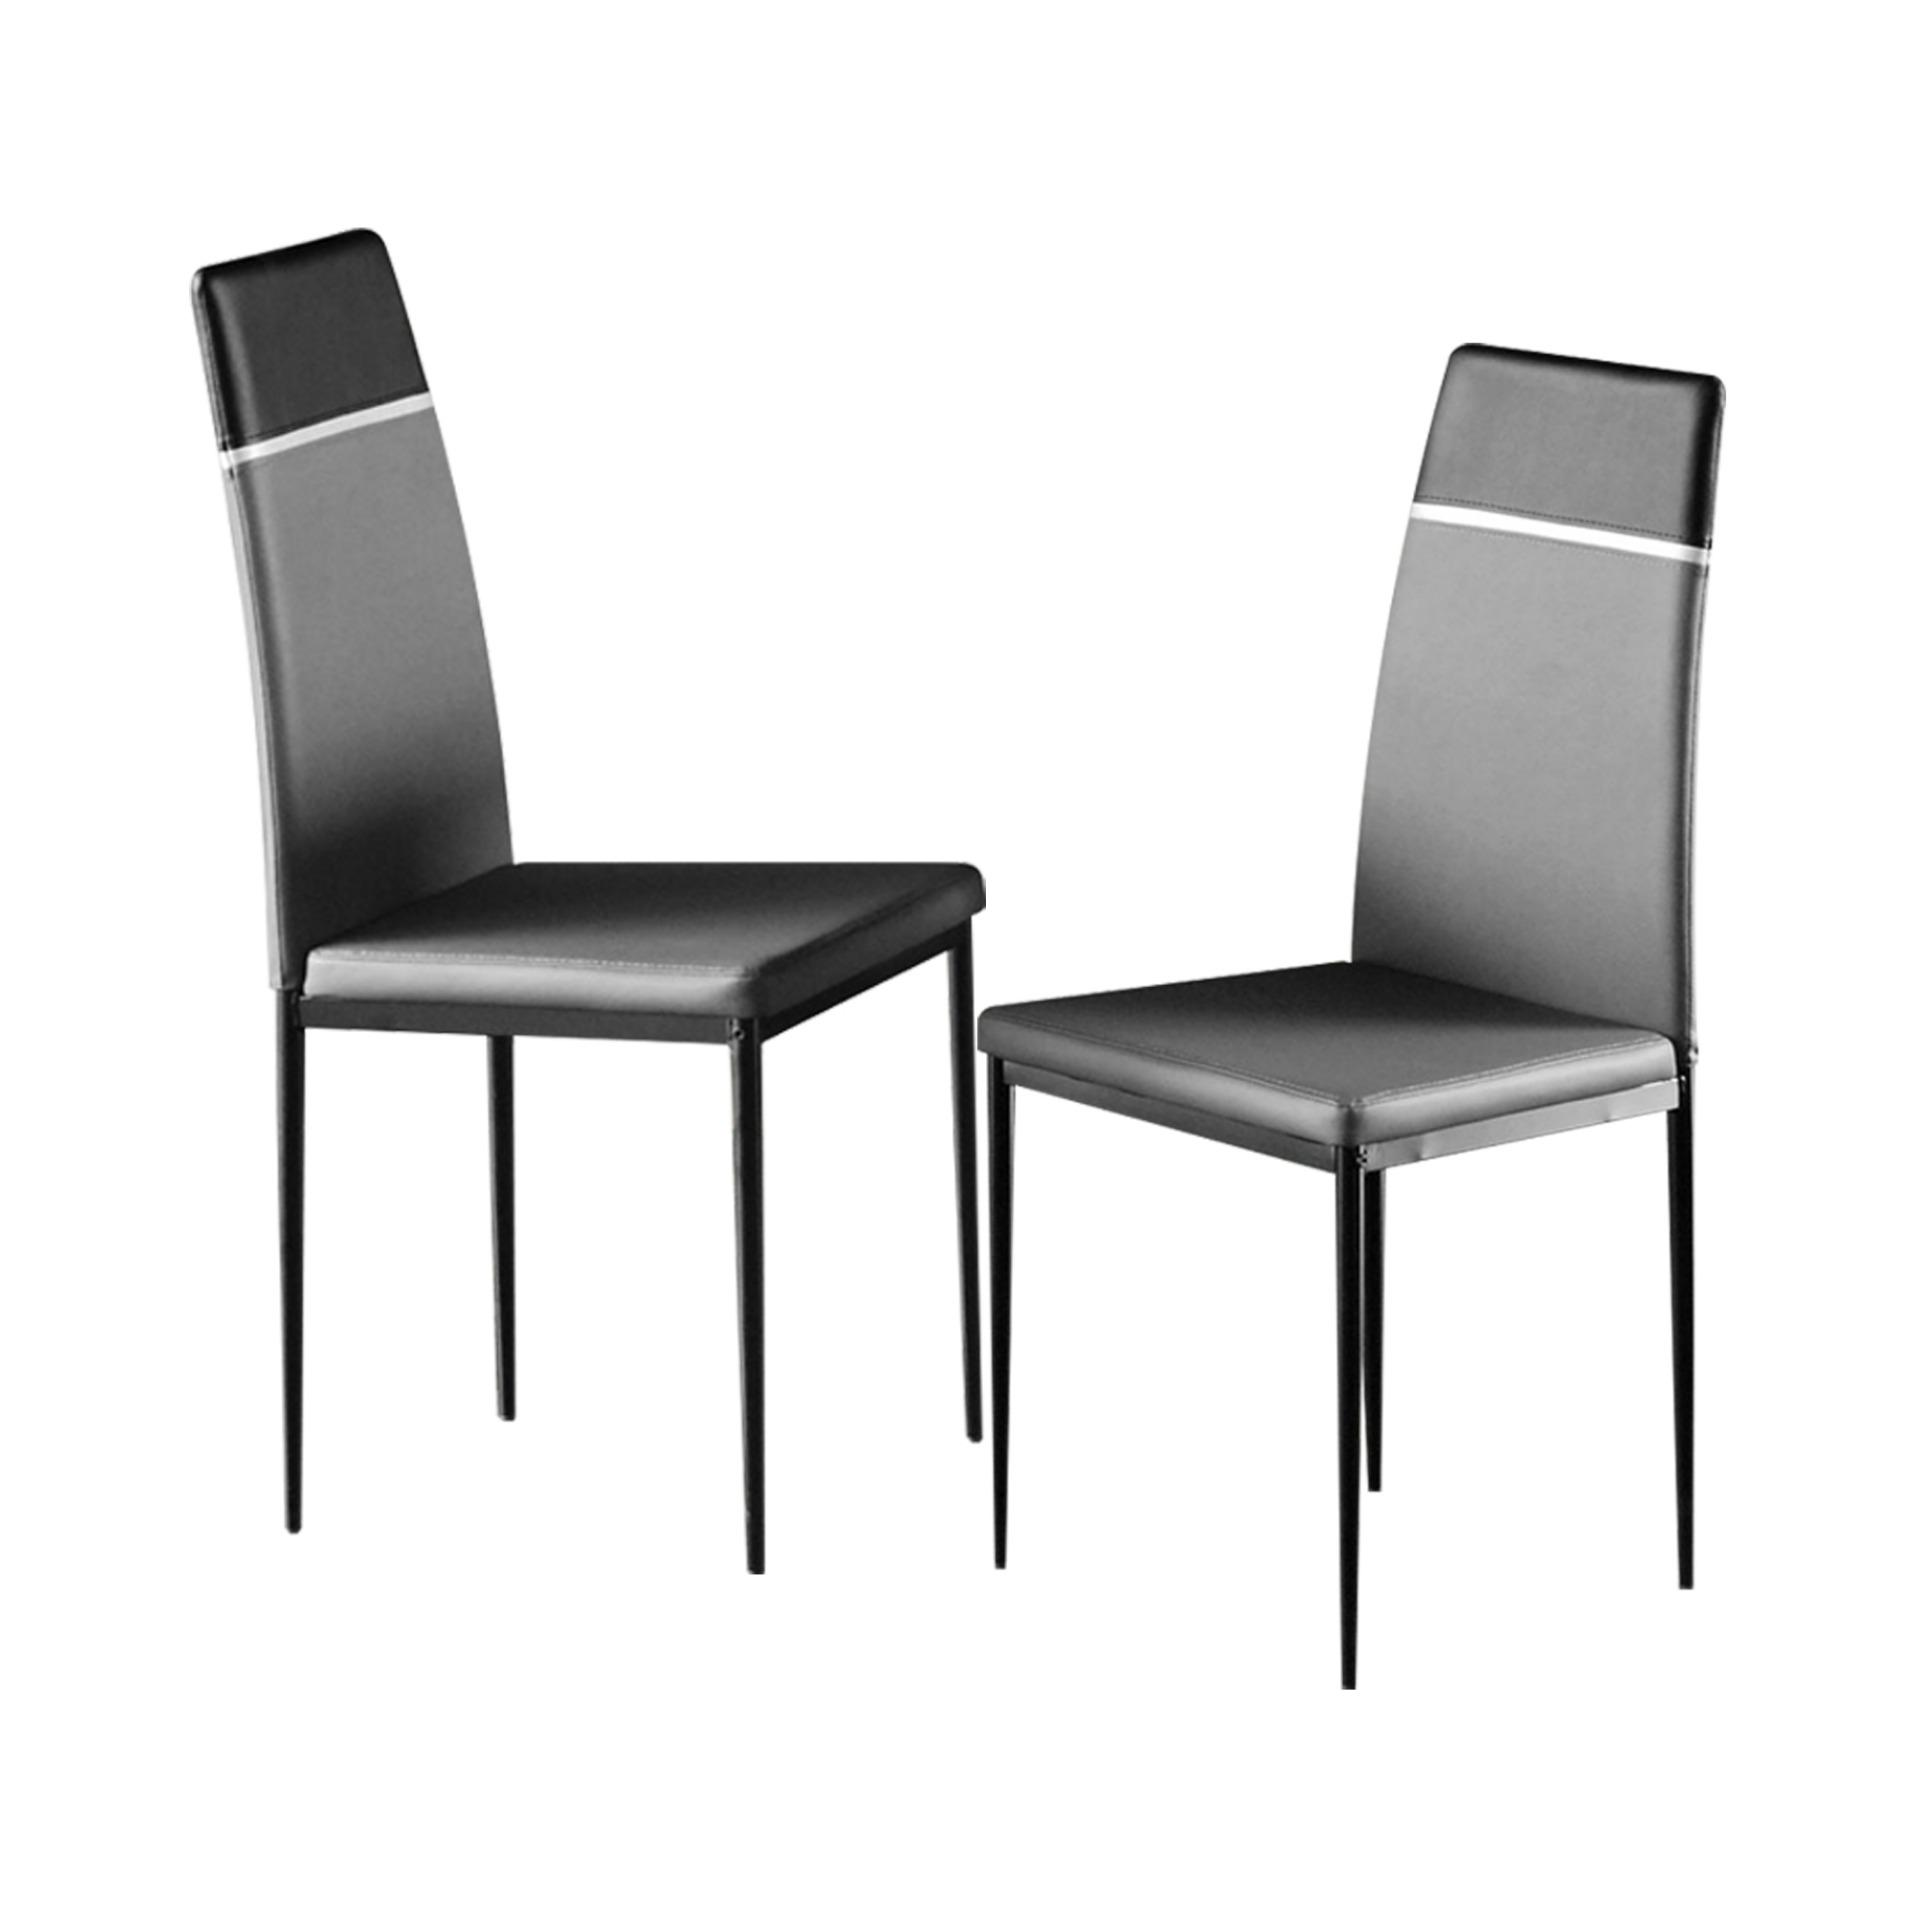 Brucie Dining Chair_Set of 2 (FREE DELIVERY)(FREE ASSEMBLY)